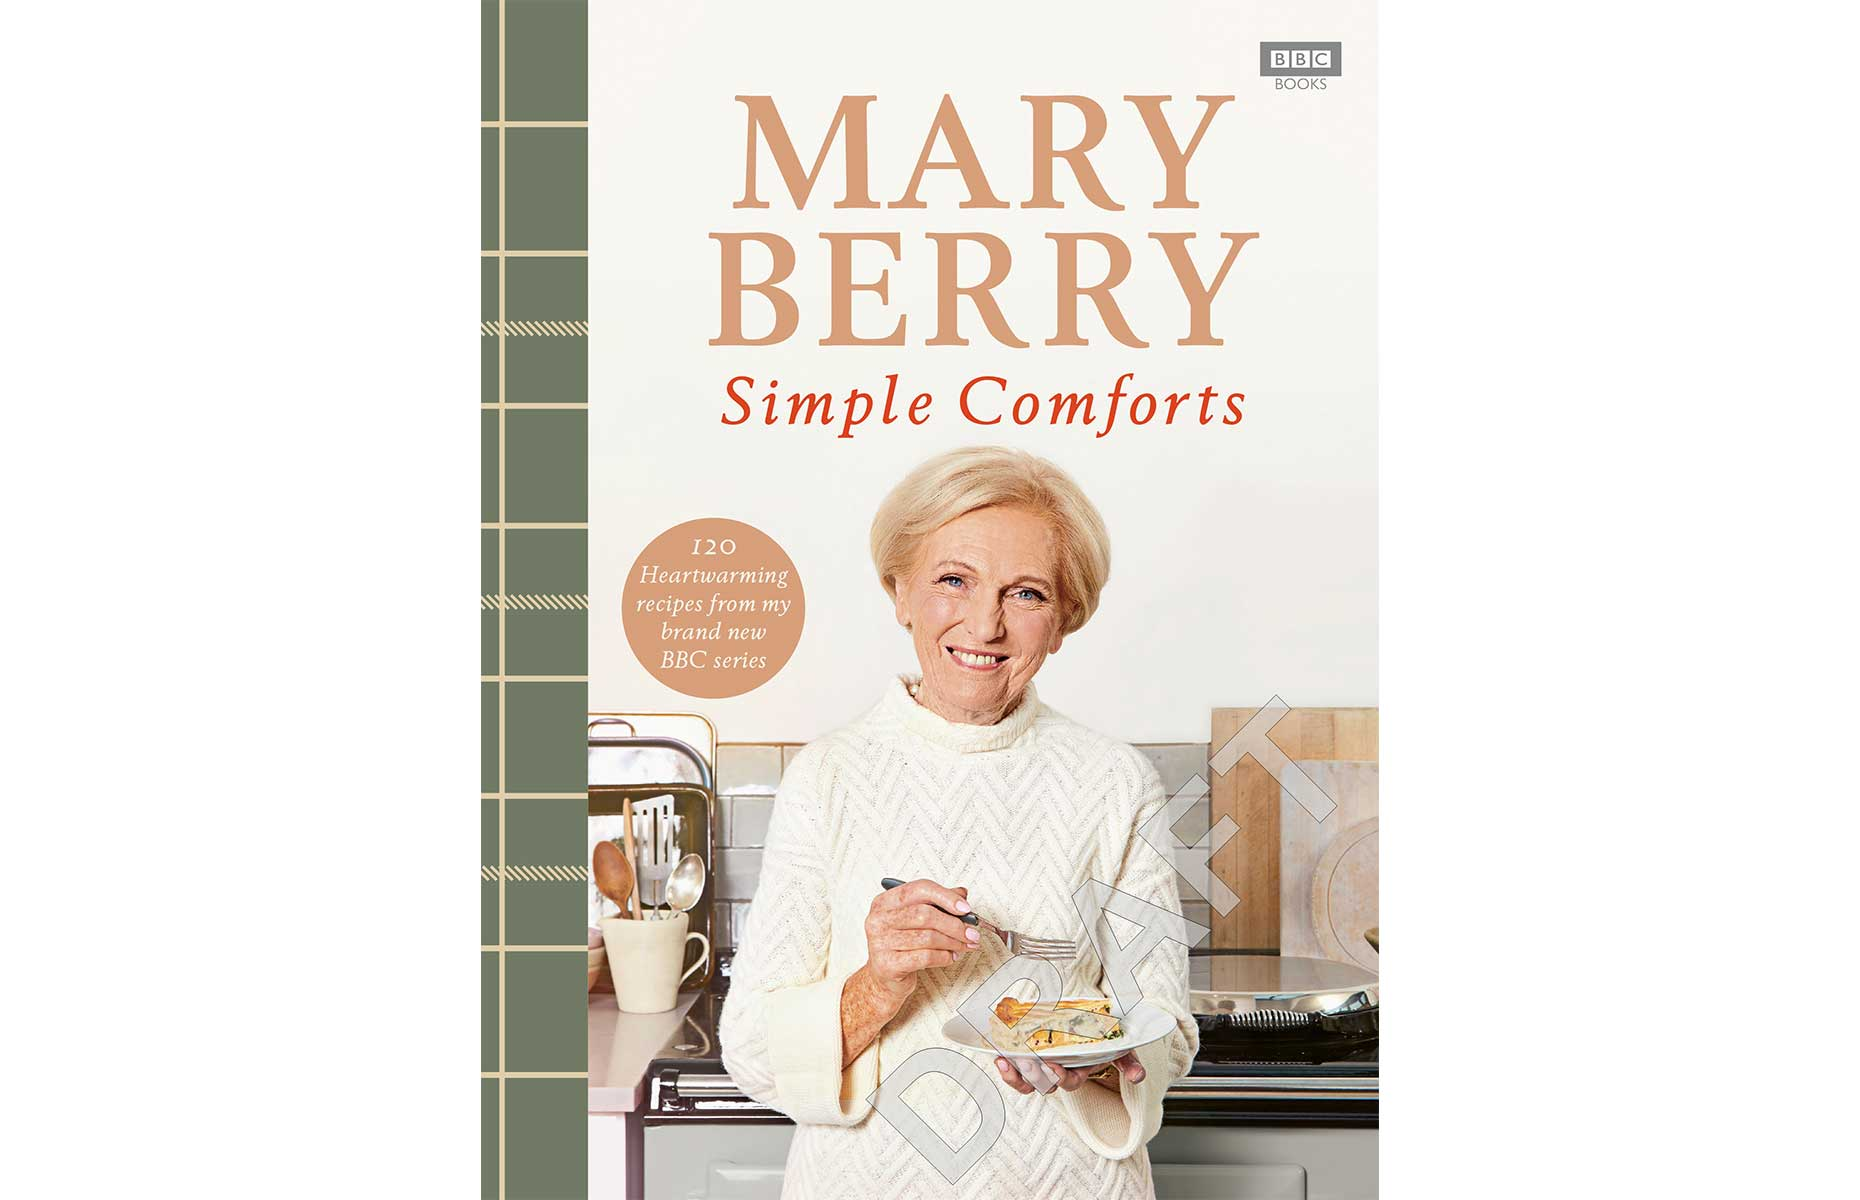 Mary Berry Simple Comforts cookbook